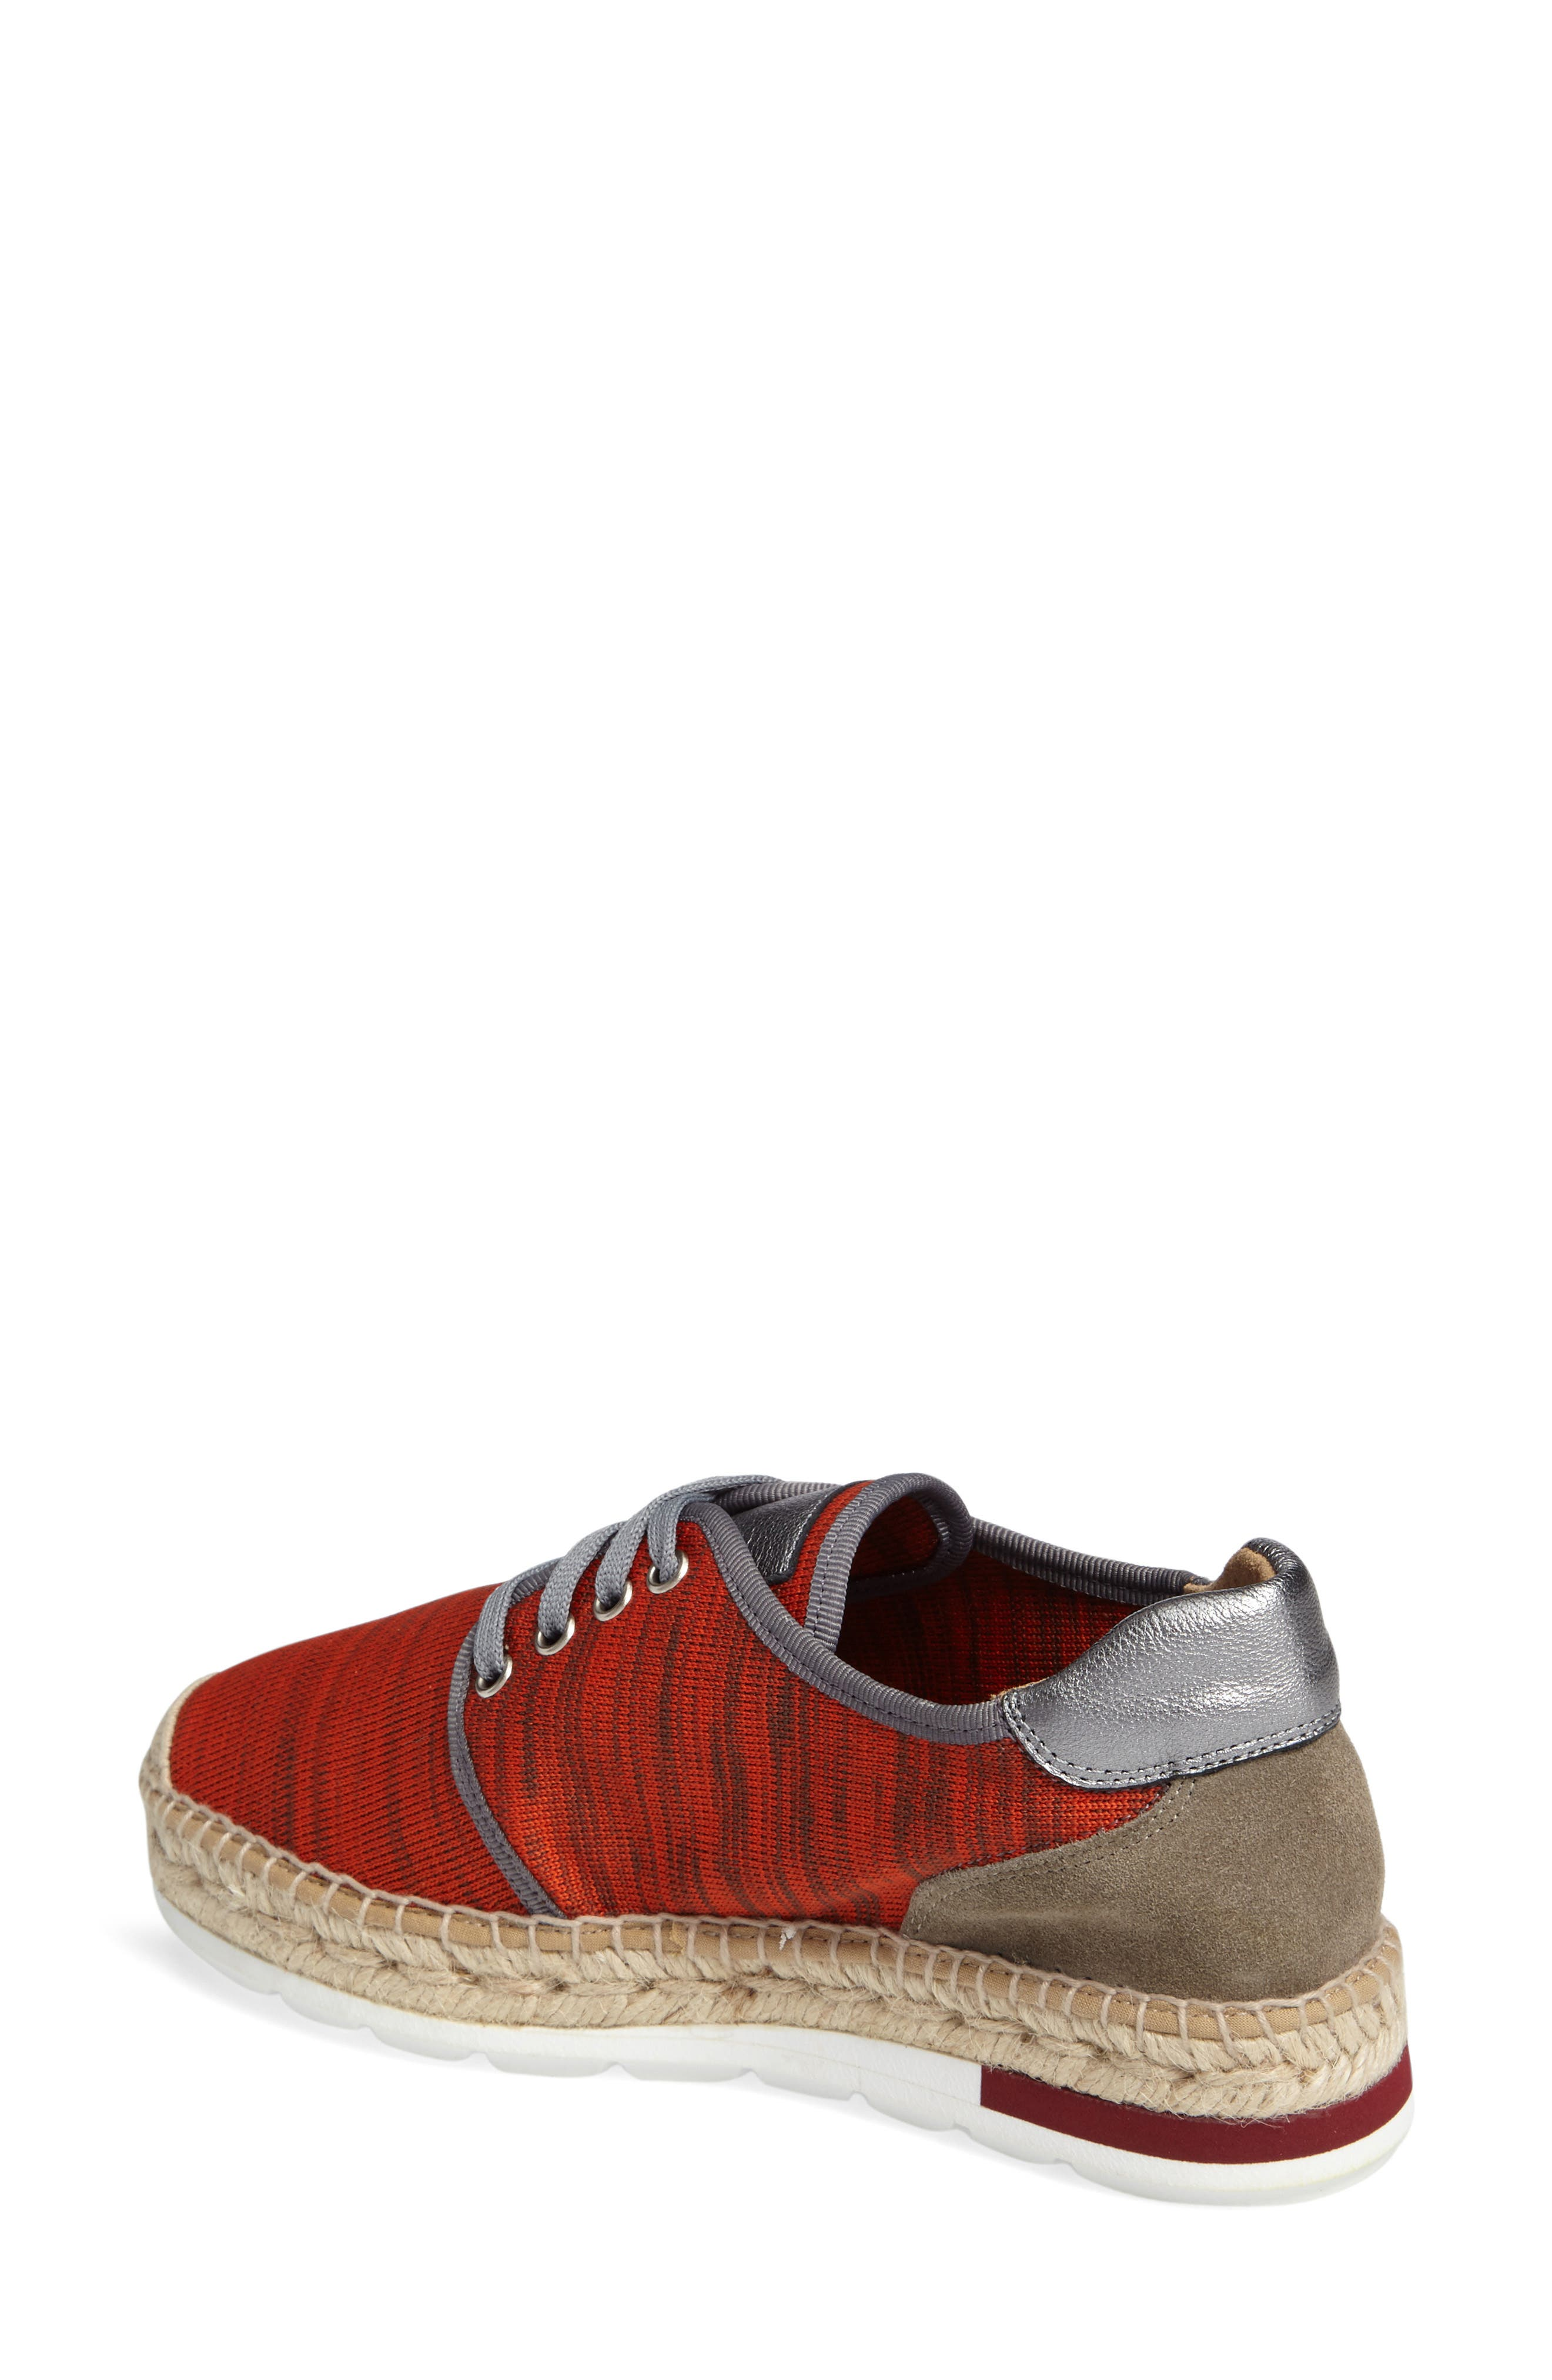 Alternate Image 2  - Bettye Muller Newport Mesh Espadrille Sneaker (Women)